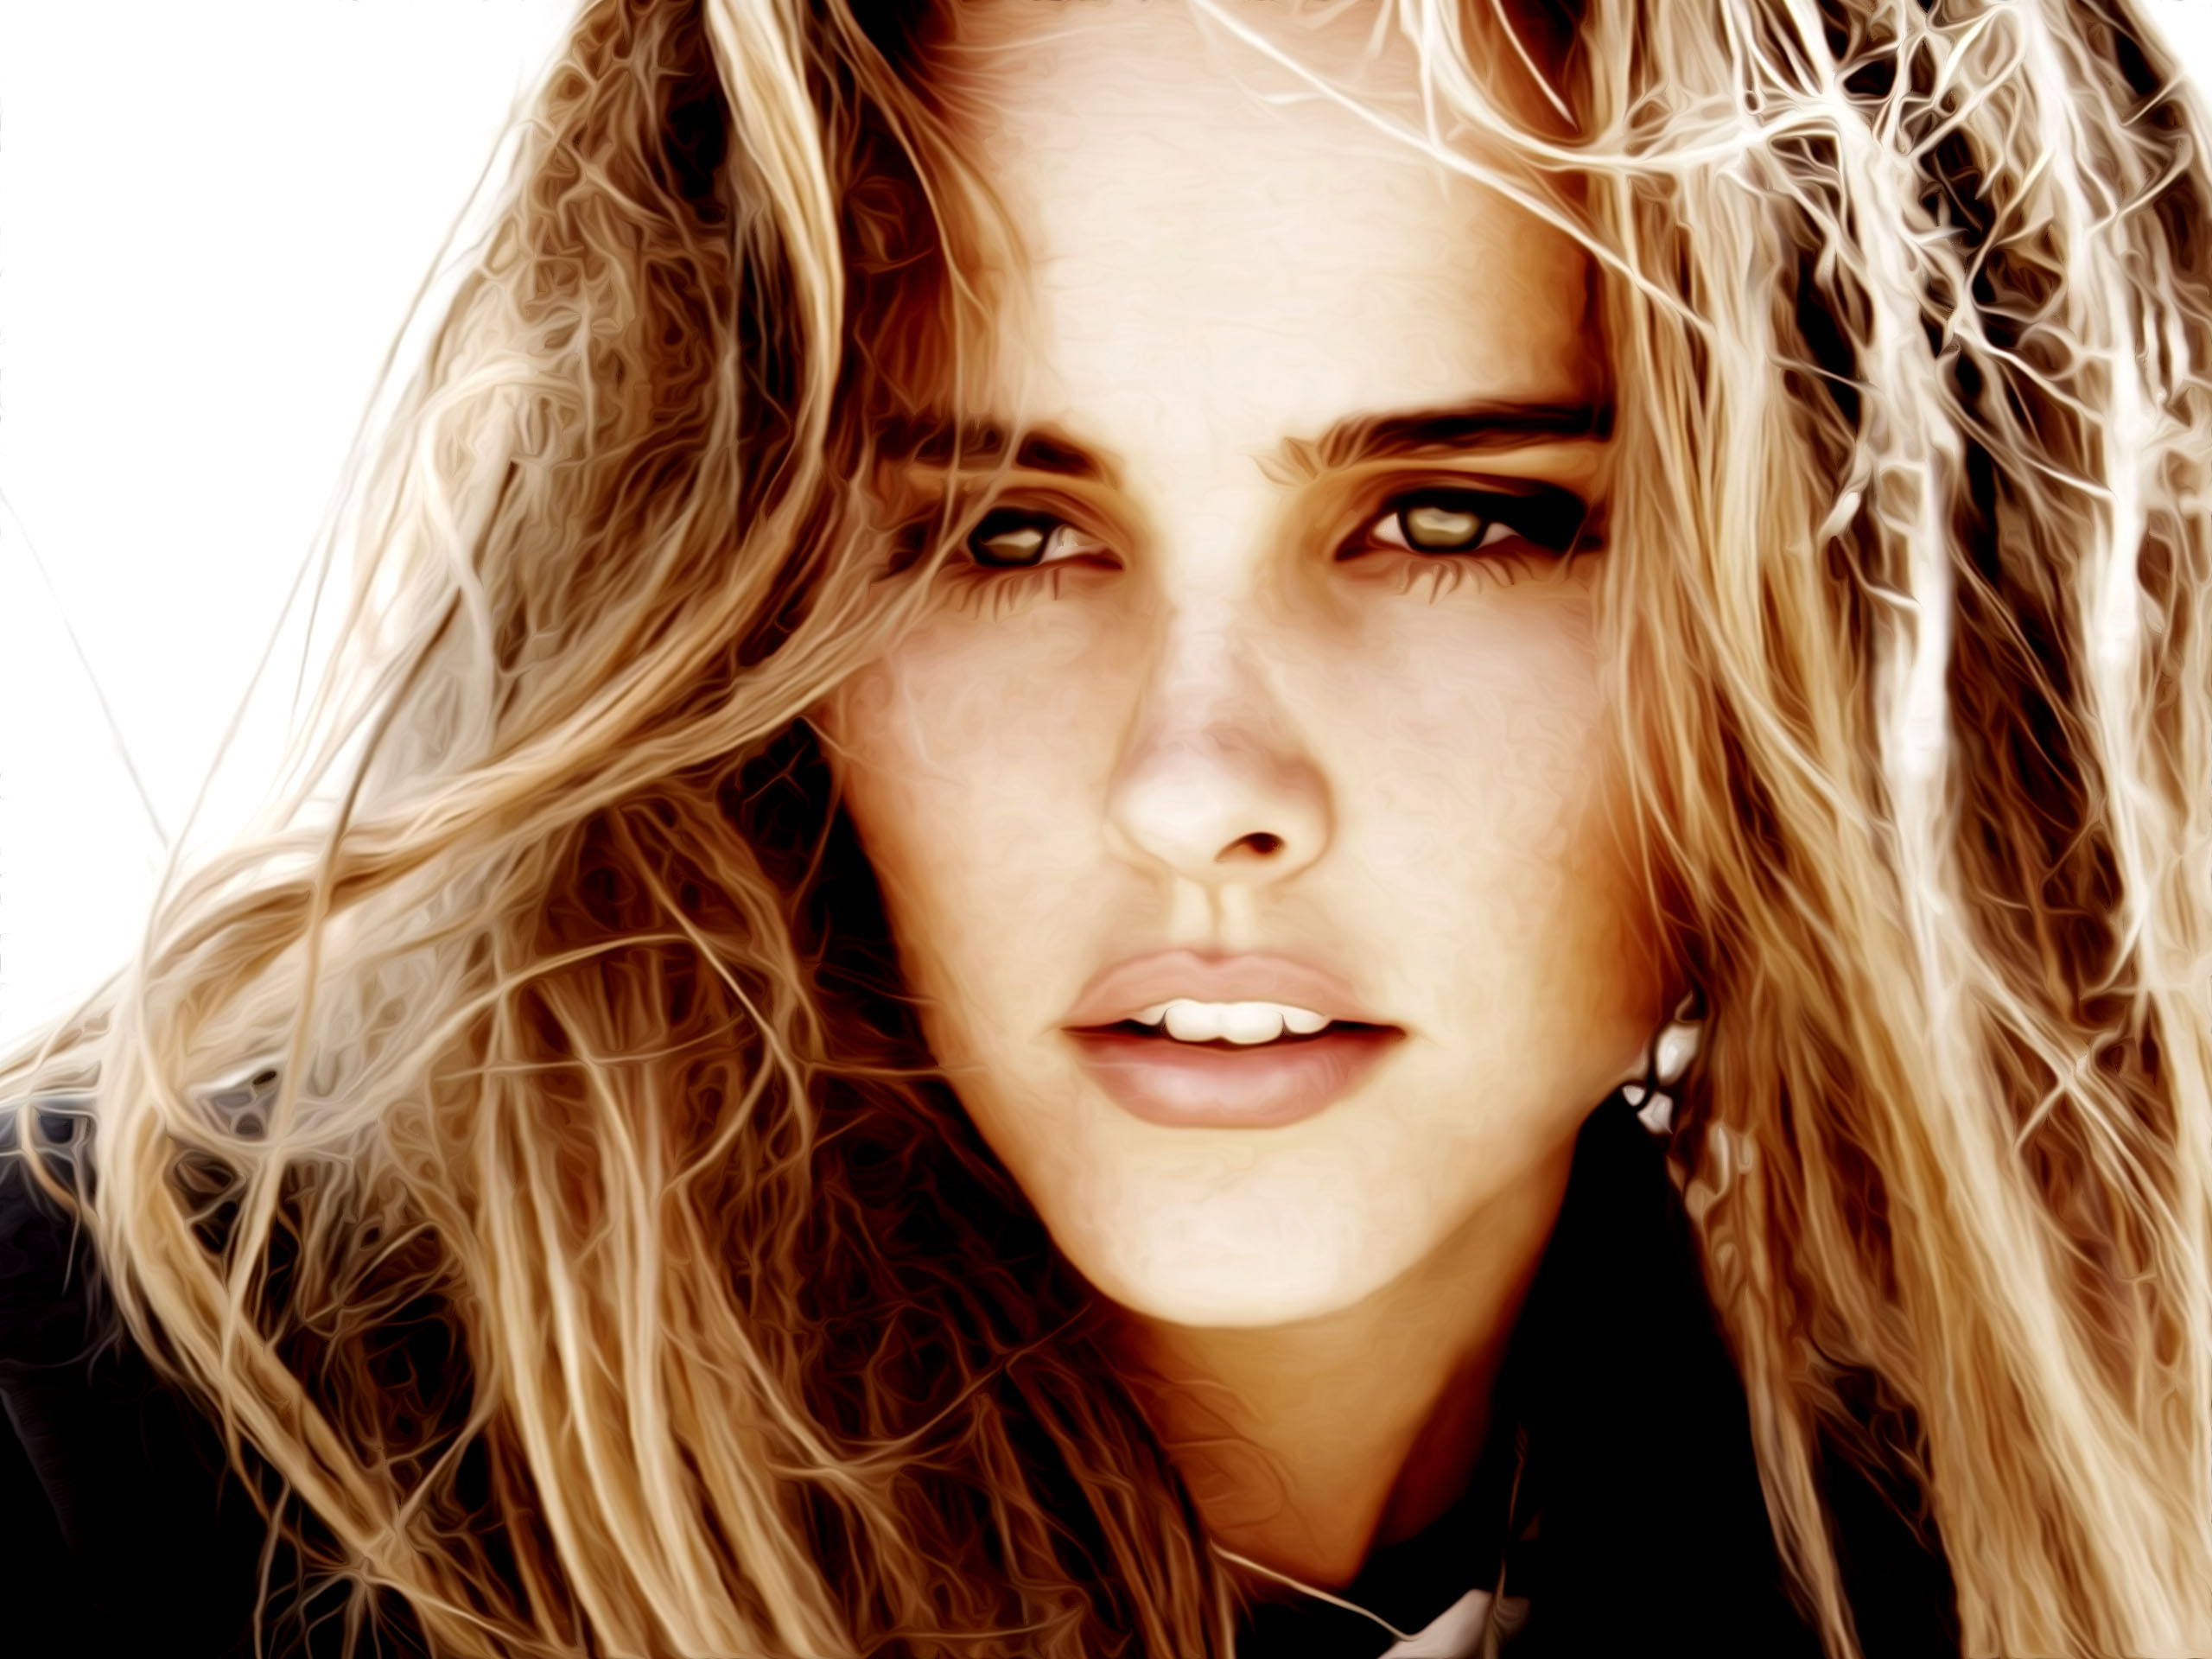 ISABEL LUCAS WALLPAPERS FREE Wallpapers Background images 2560x1920